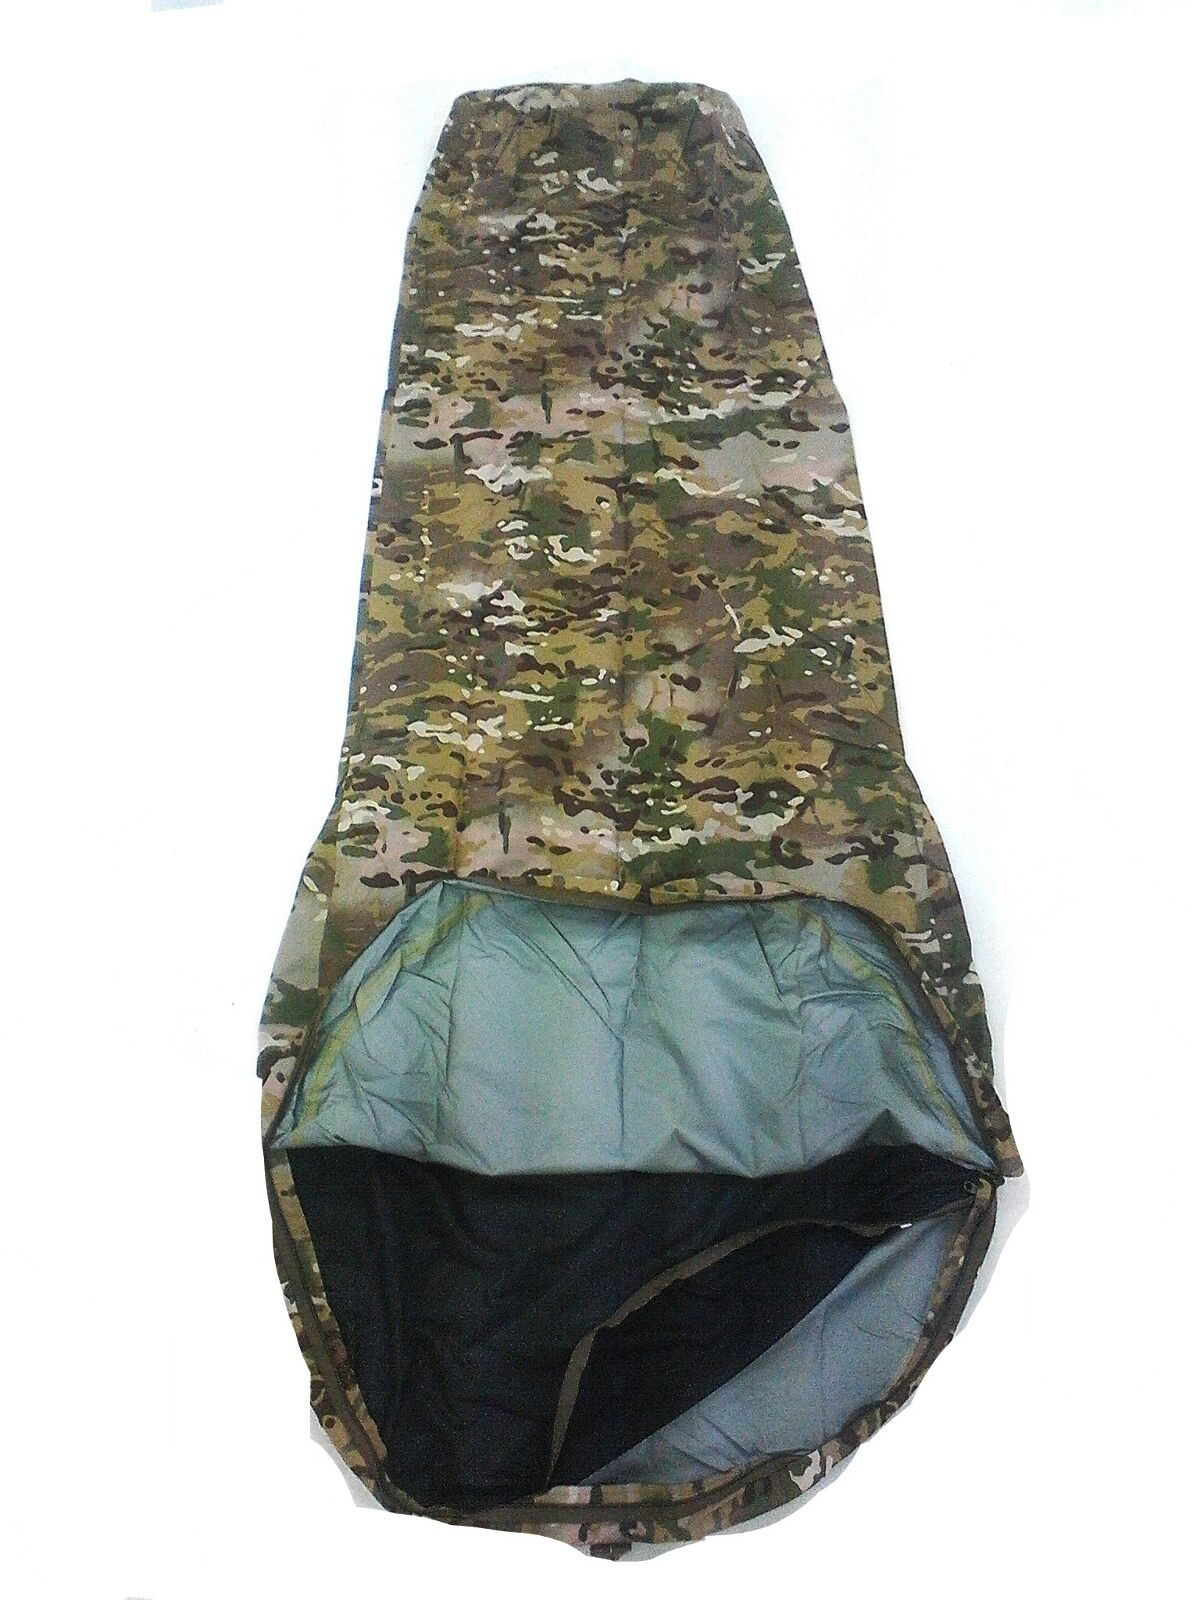 CSG MULTICAM BIVY BAG WITH ALLOY HEAD POLE 3 LAYER LARGE   XLARGE 235X110X80CM -